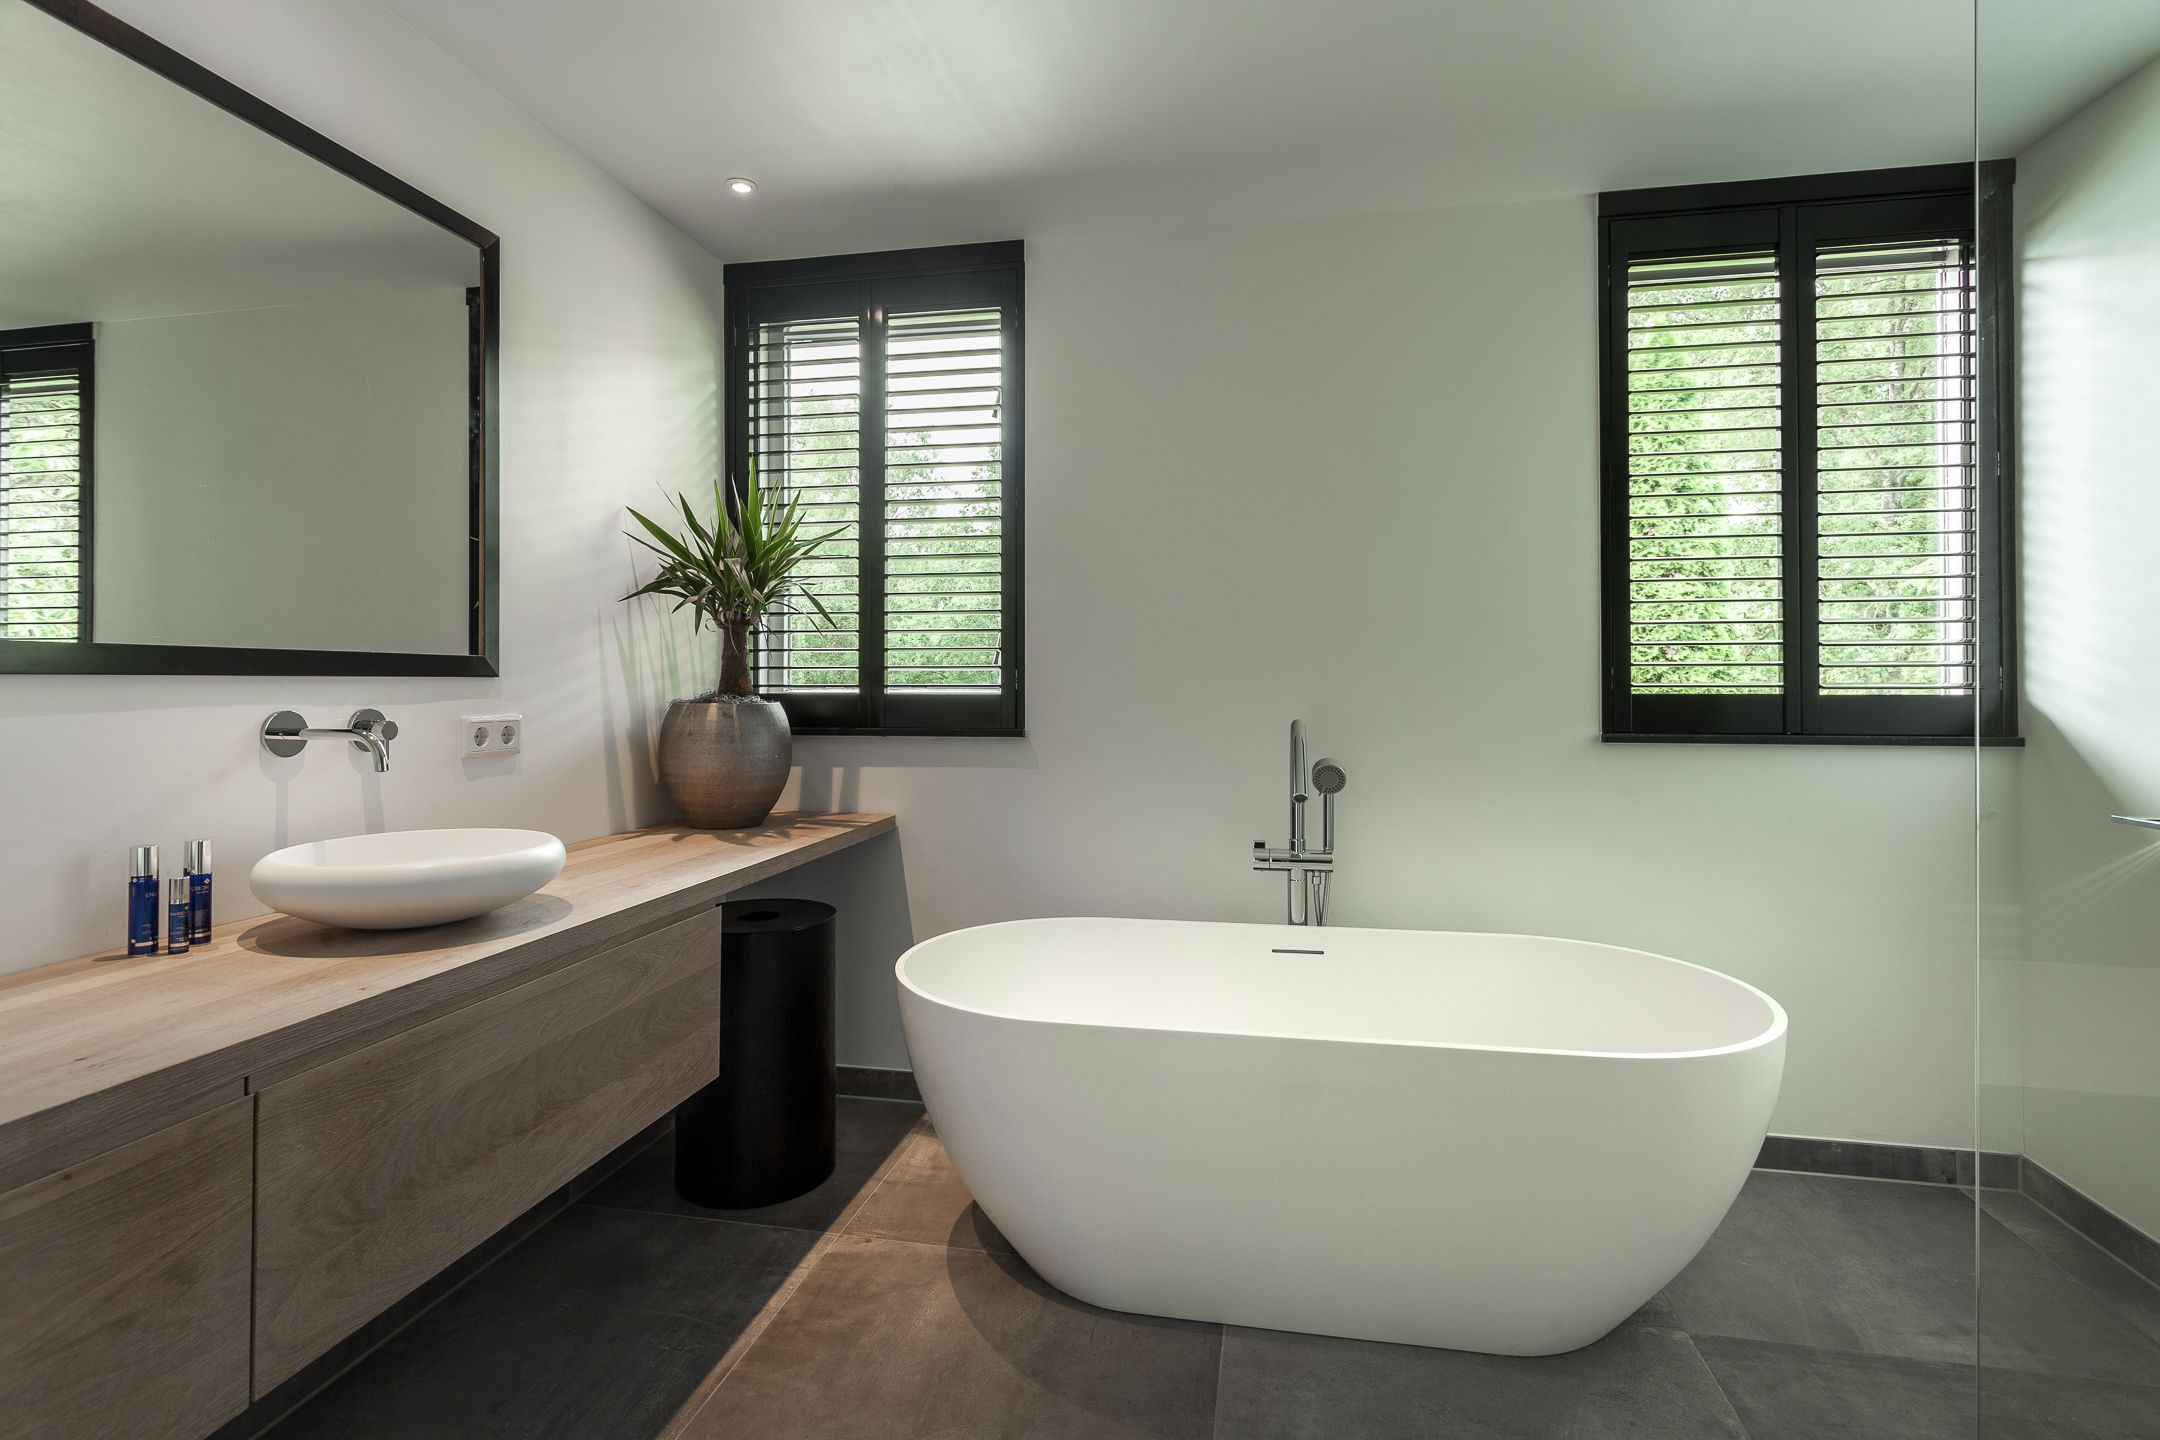 Zwarte shutters in moderne badkamer solid surface bad en